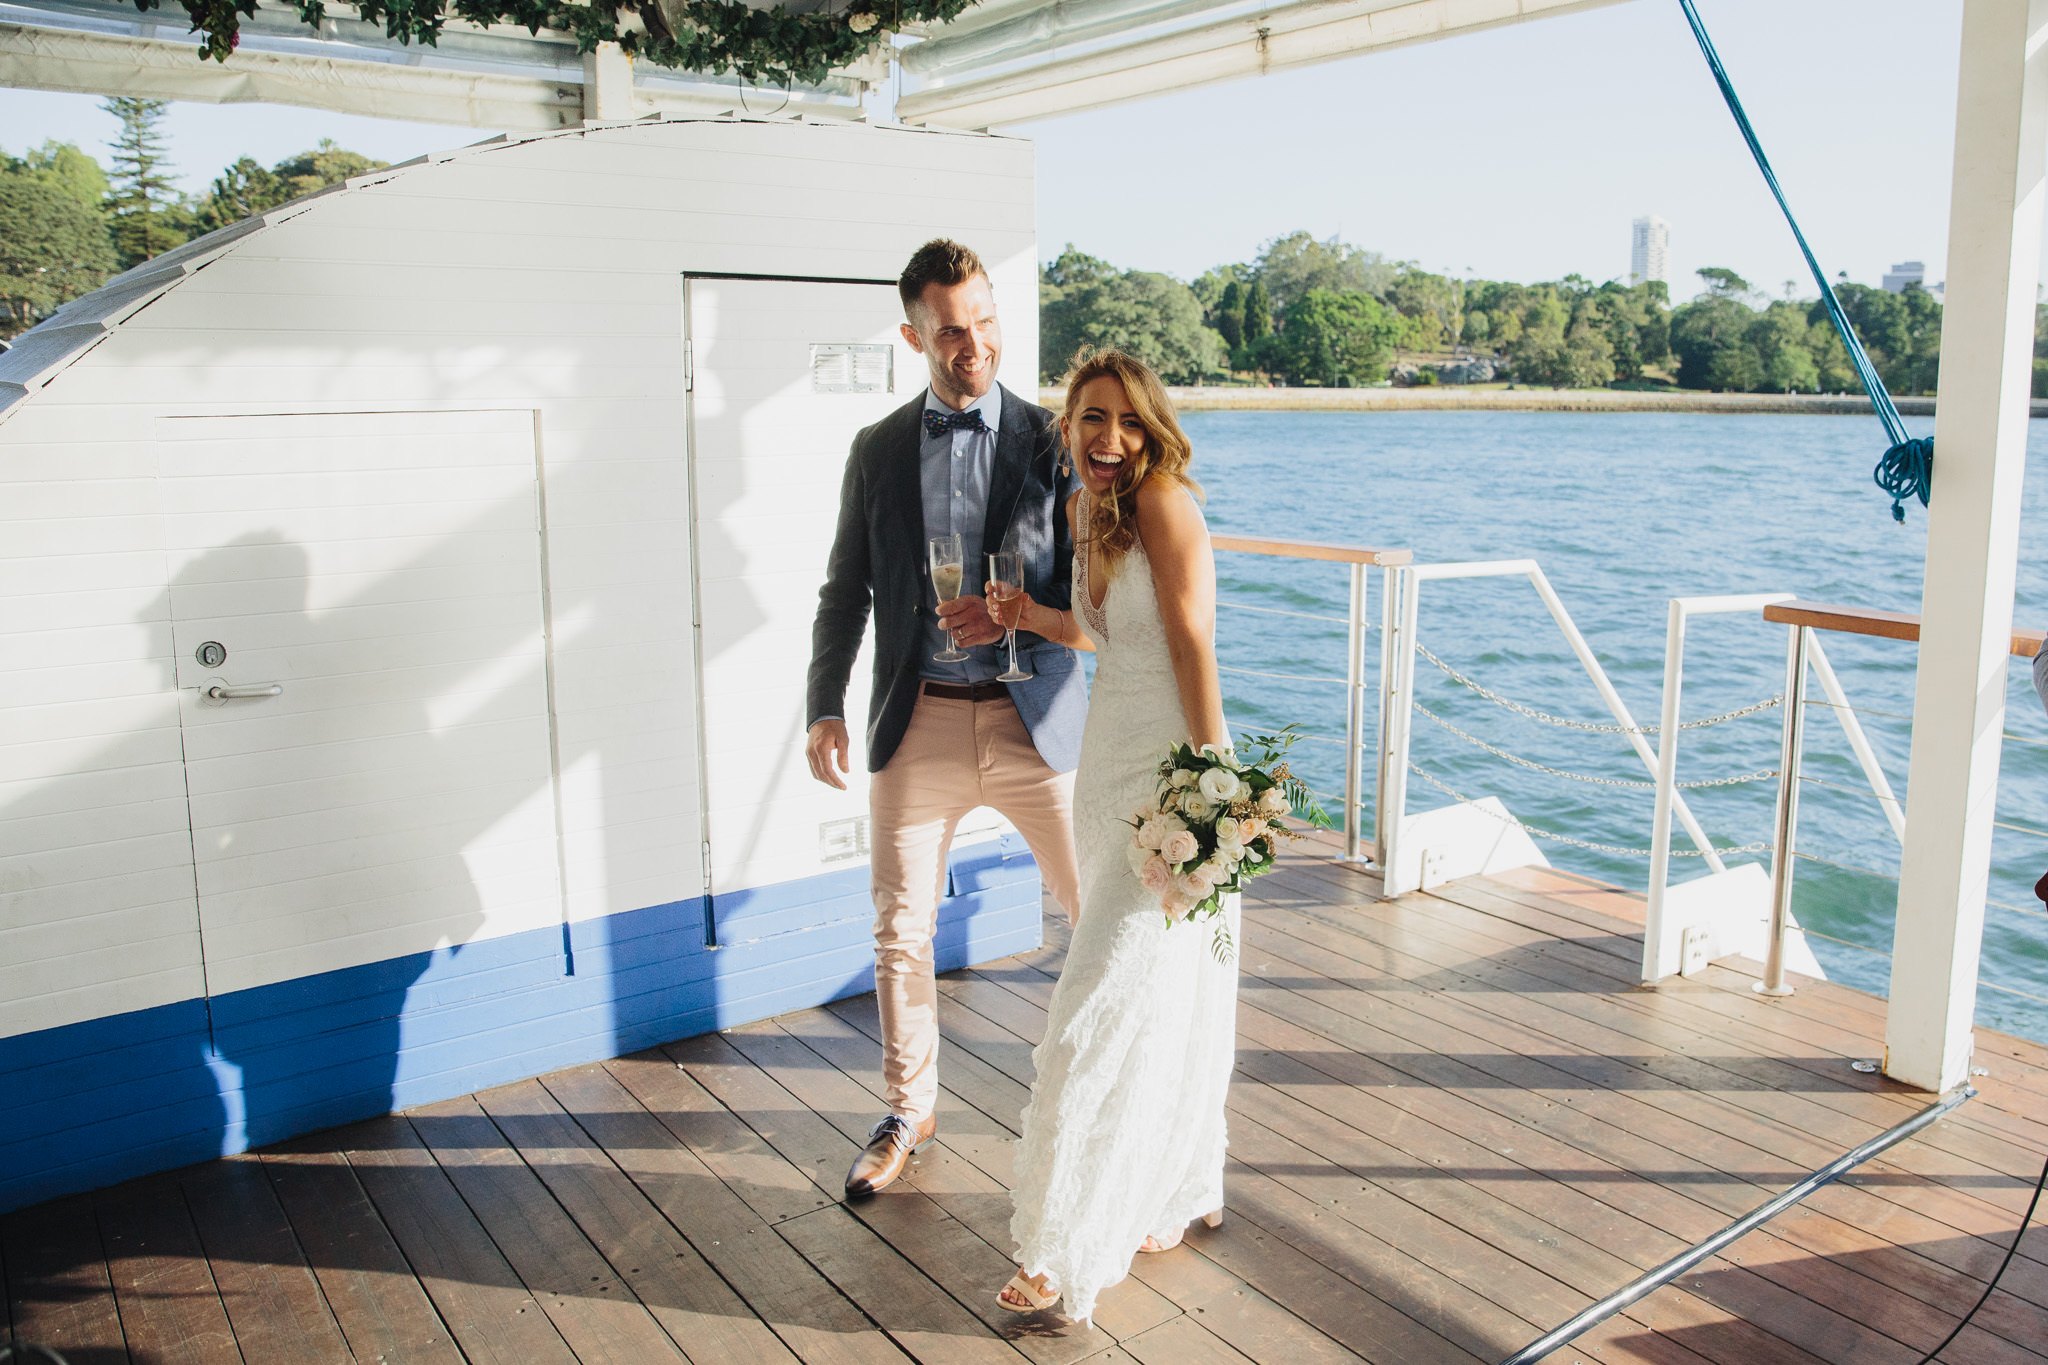 Bride and groom at their wedding on The Island Sydney Harbour